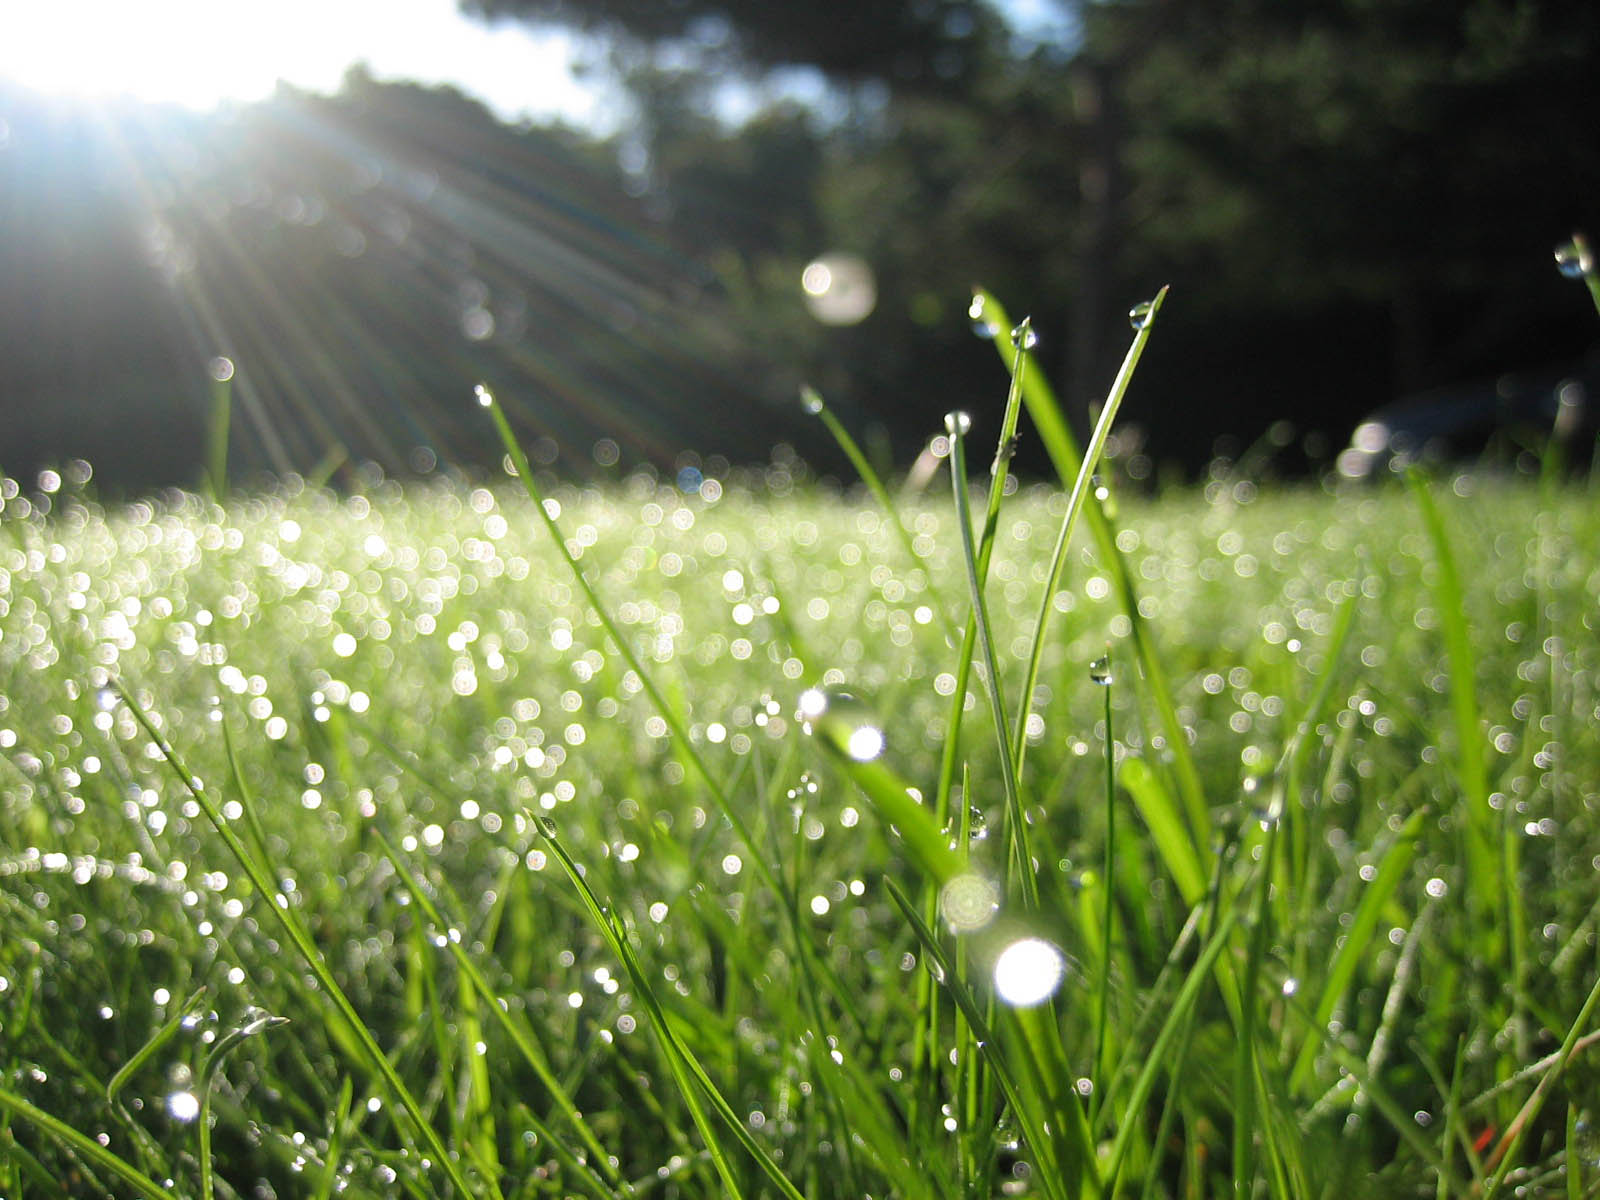 the new grass of the morning